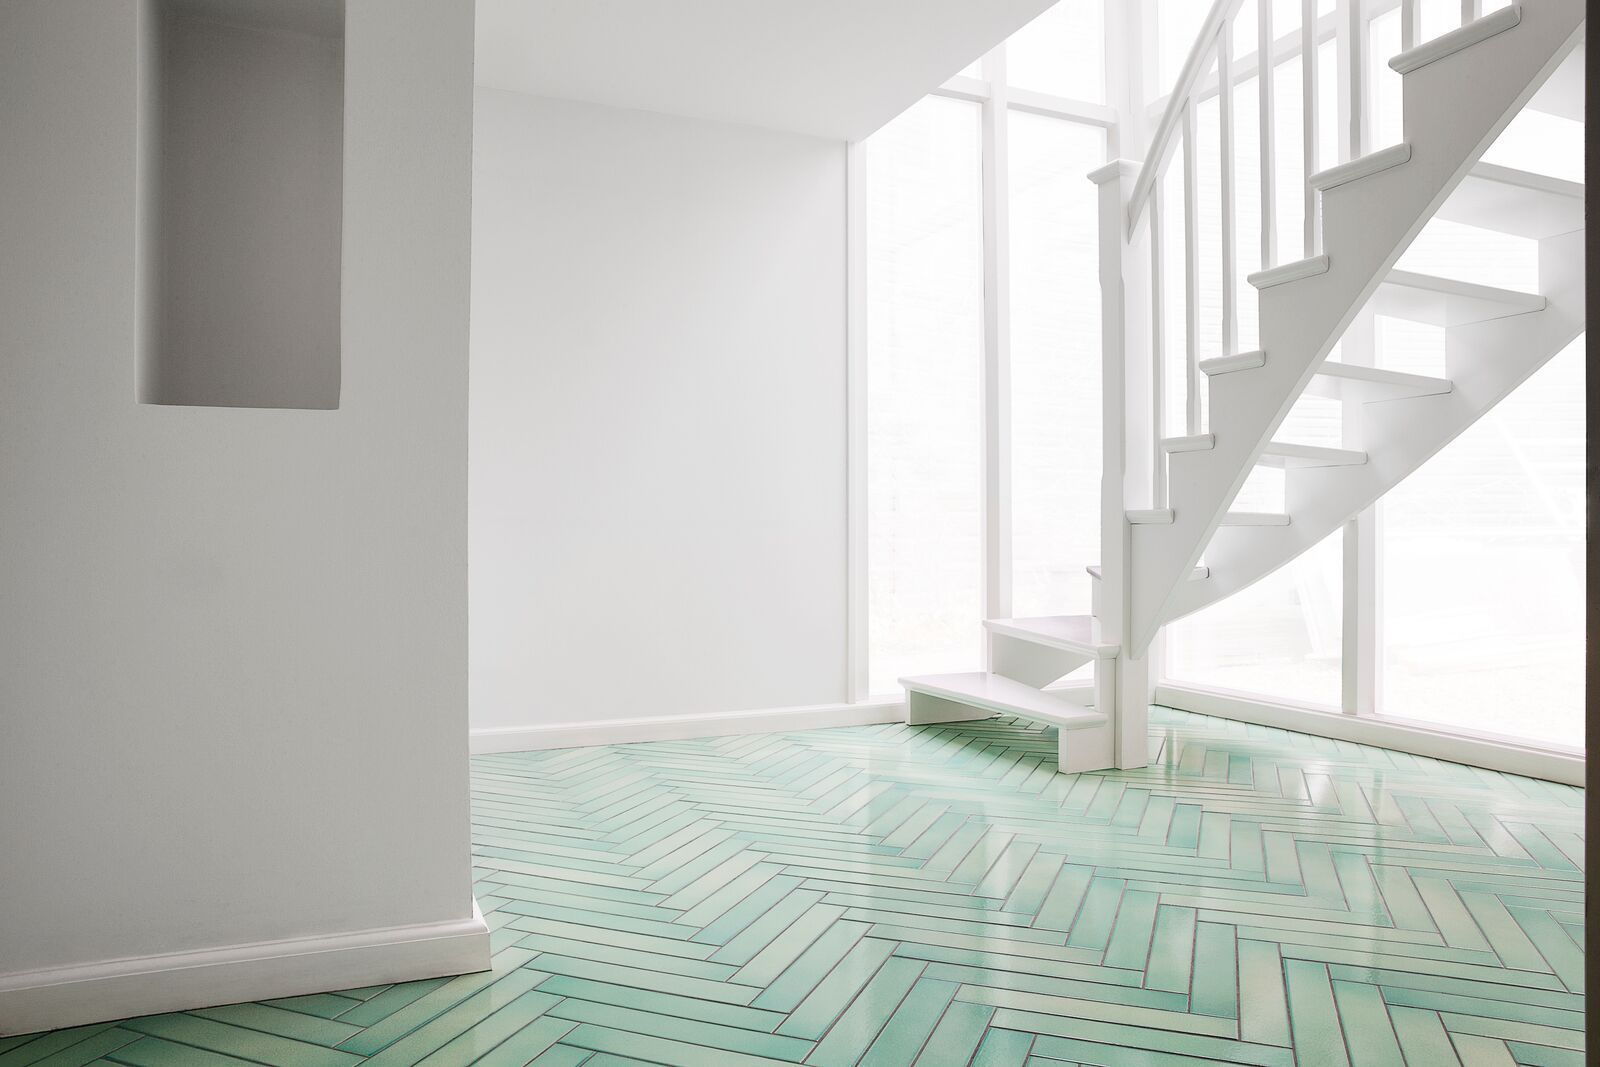 How Gorgeous Is This Green Herringbone Floor Made Of Glazed Lava Stone From Made A Mano S Cristalli Range Herringbone Floor Home Decor Made A Mano